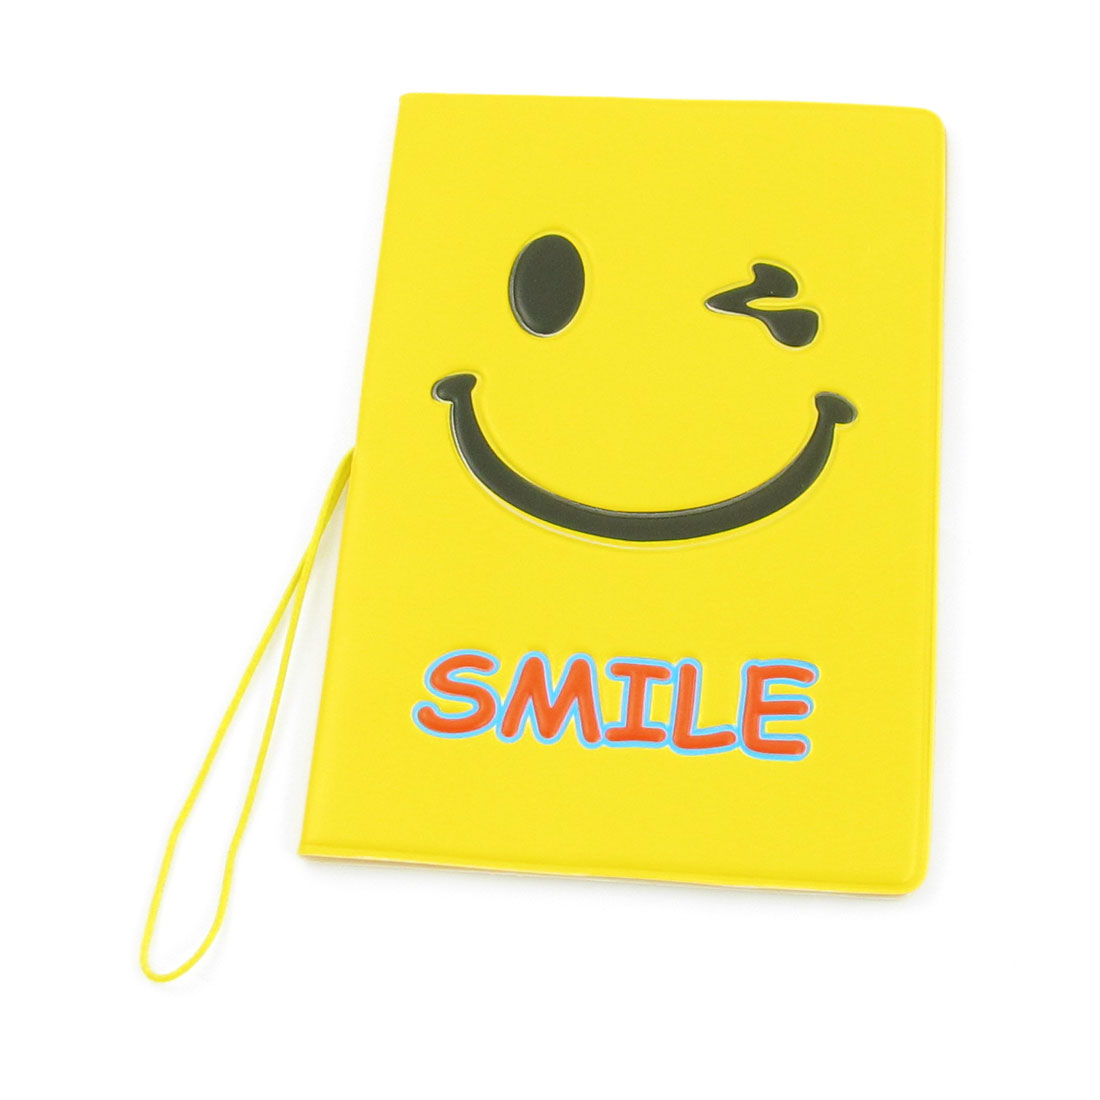 Faux Leather Smiley Pattern Wallet Case Holder Protector Yellow for Passport - image 1 of 1